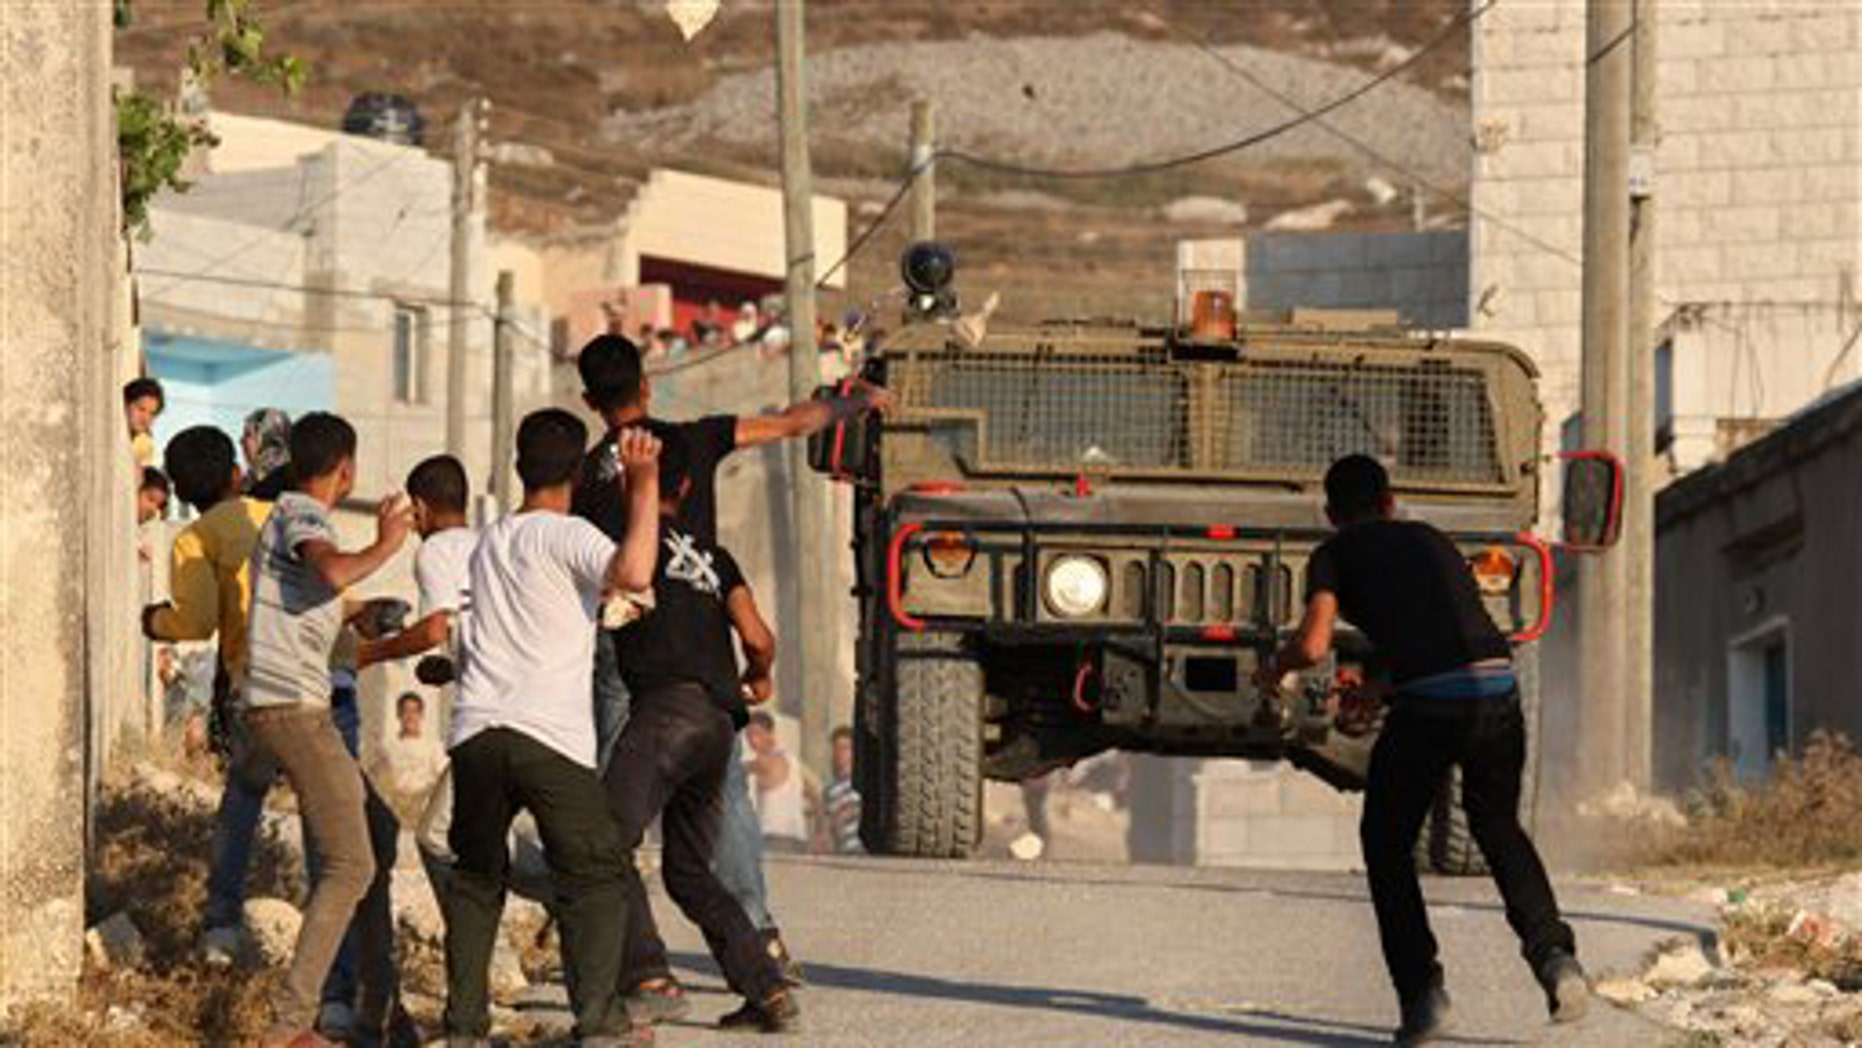 July 3, 2011: Palestinian youths hurl stones at Israeli troops during clashes over farming land between the Jewish settlement of Yitzhar and the nearby West Bank village of Asira, near Nablus.